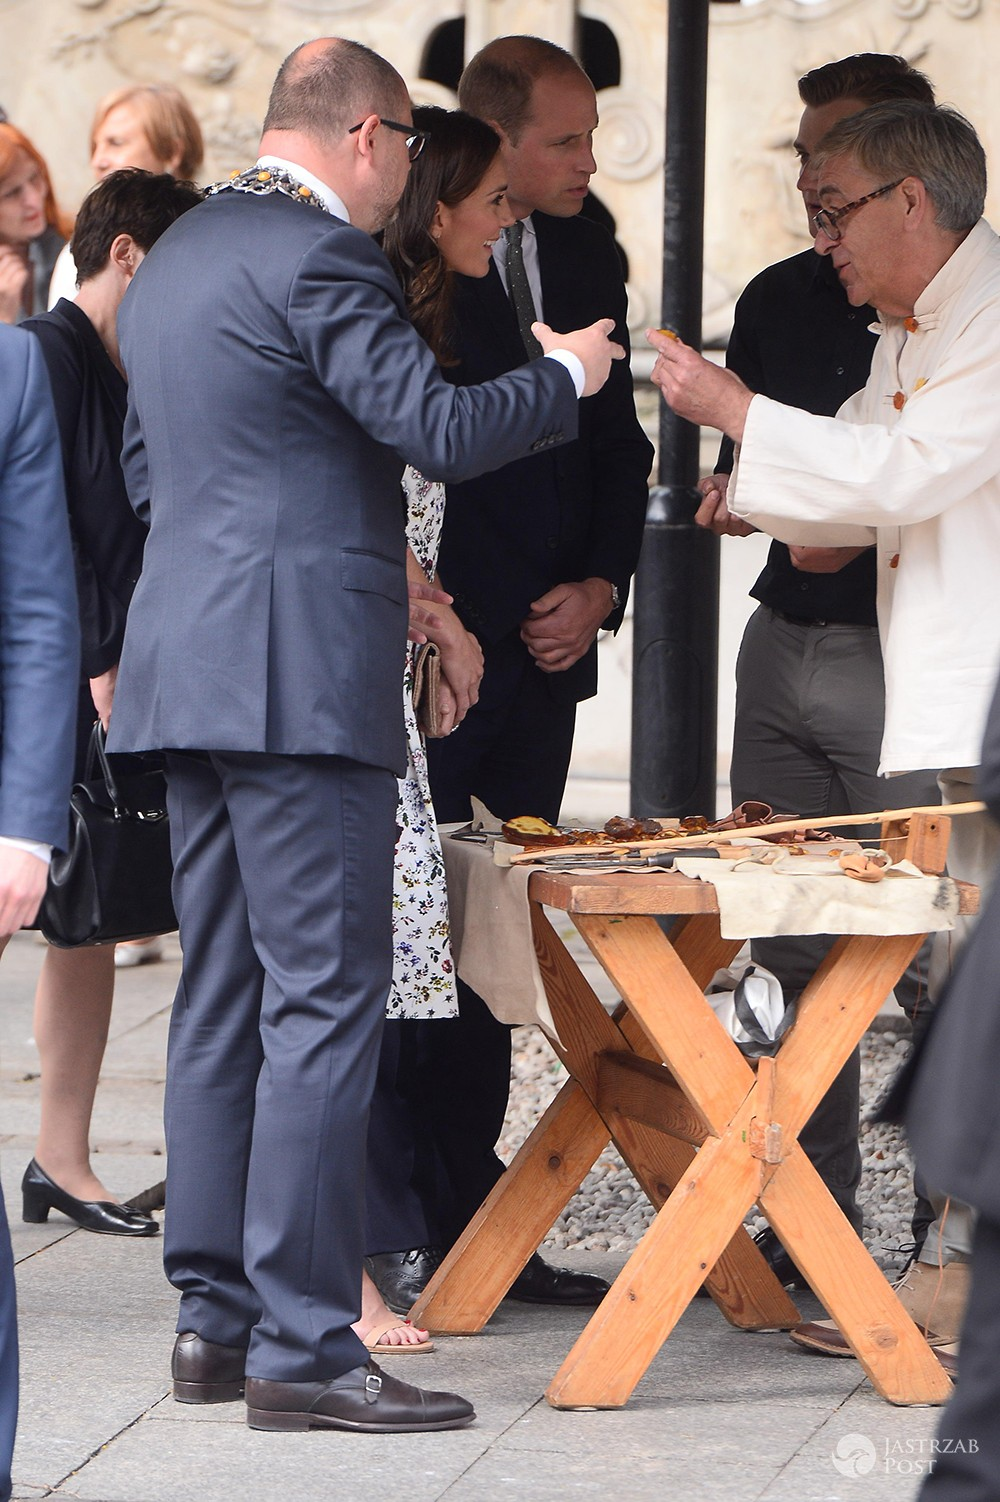 Co Kate i William zjedli w Gdańsku?